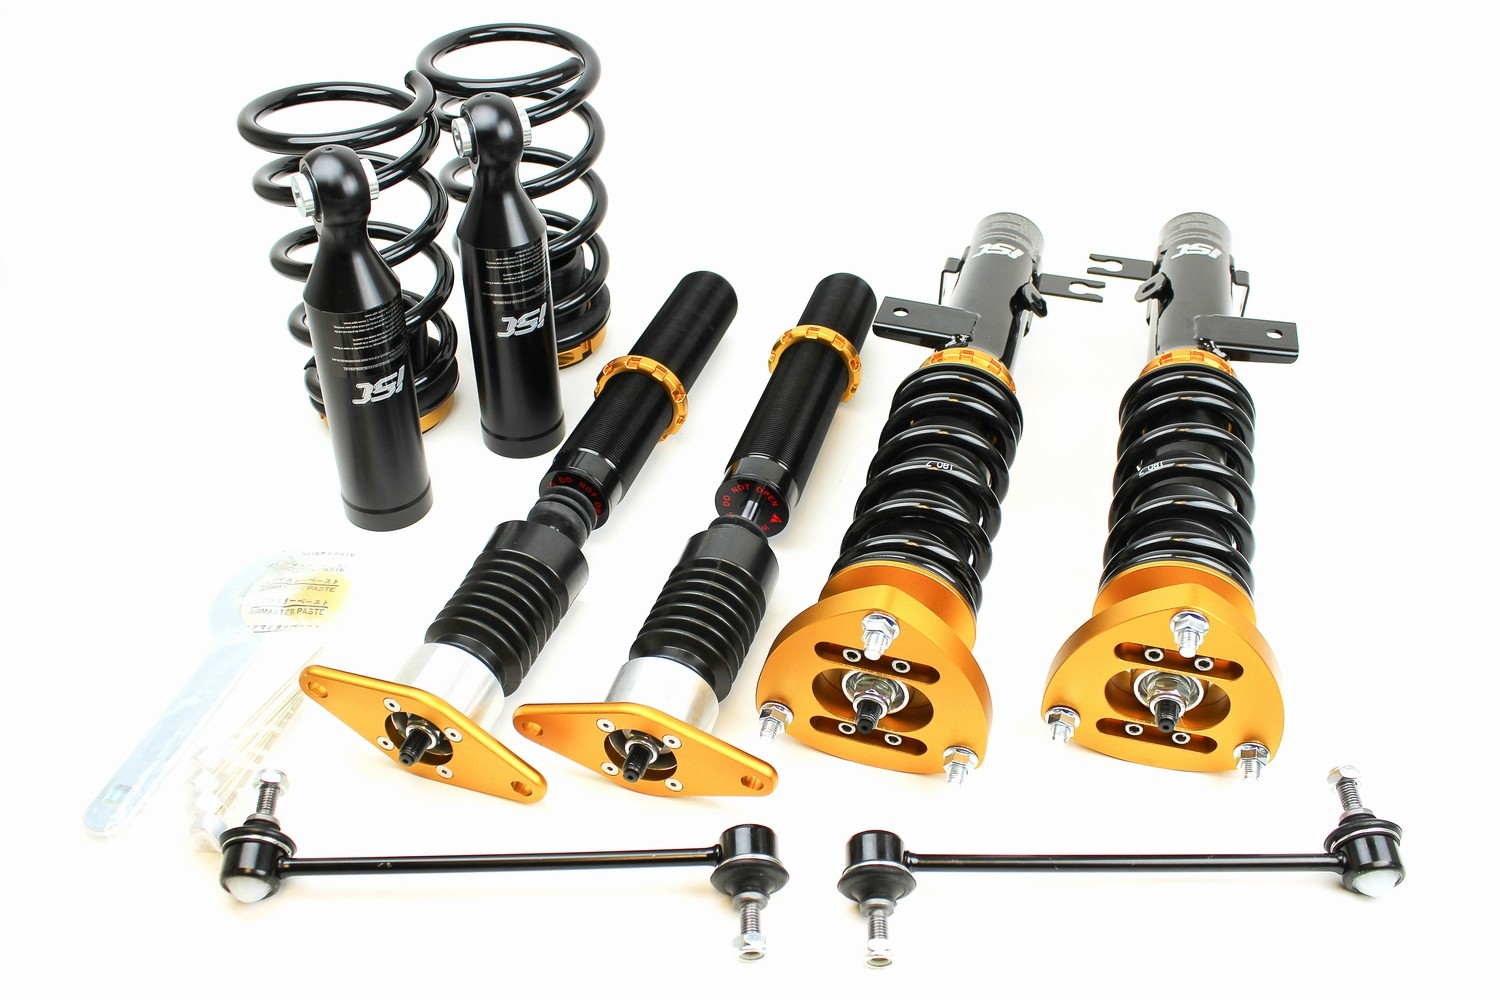 CLEARANCE Mazda 3 (14-17) ISC N1 Coilover Suspension - Track/Race Valving